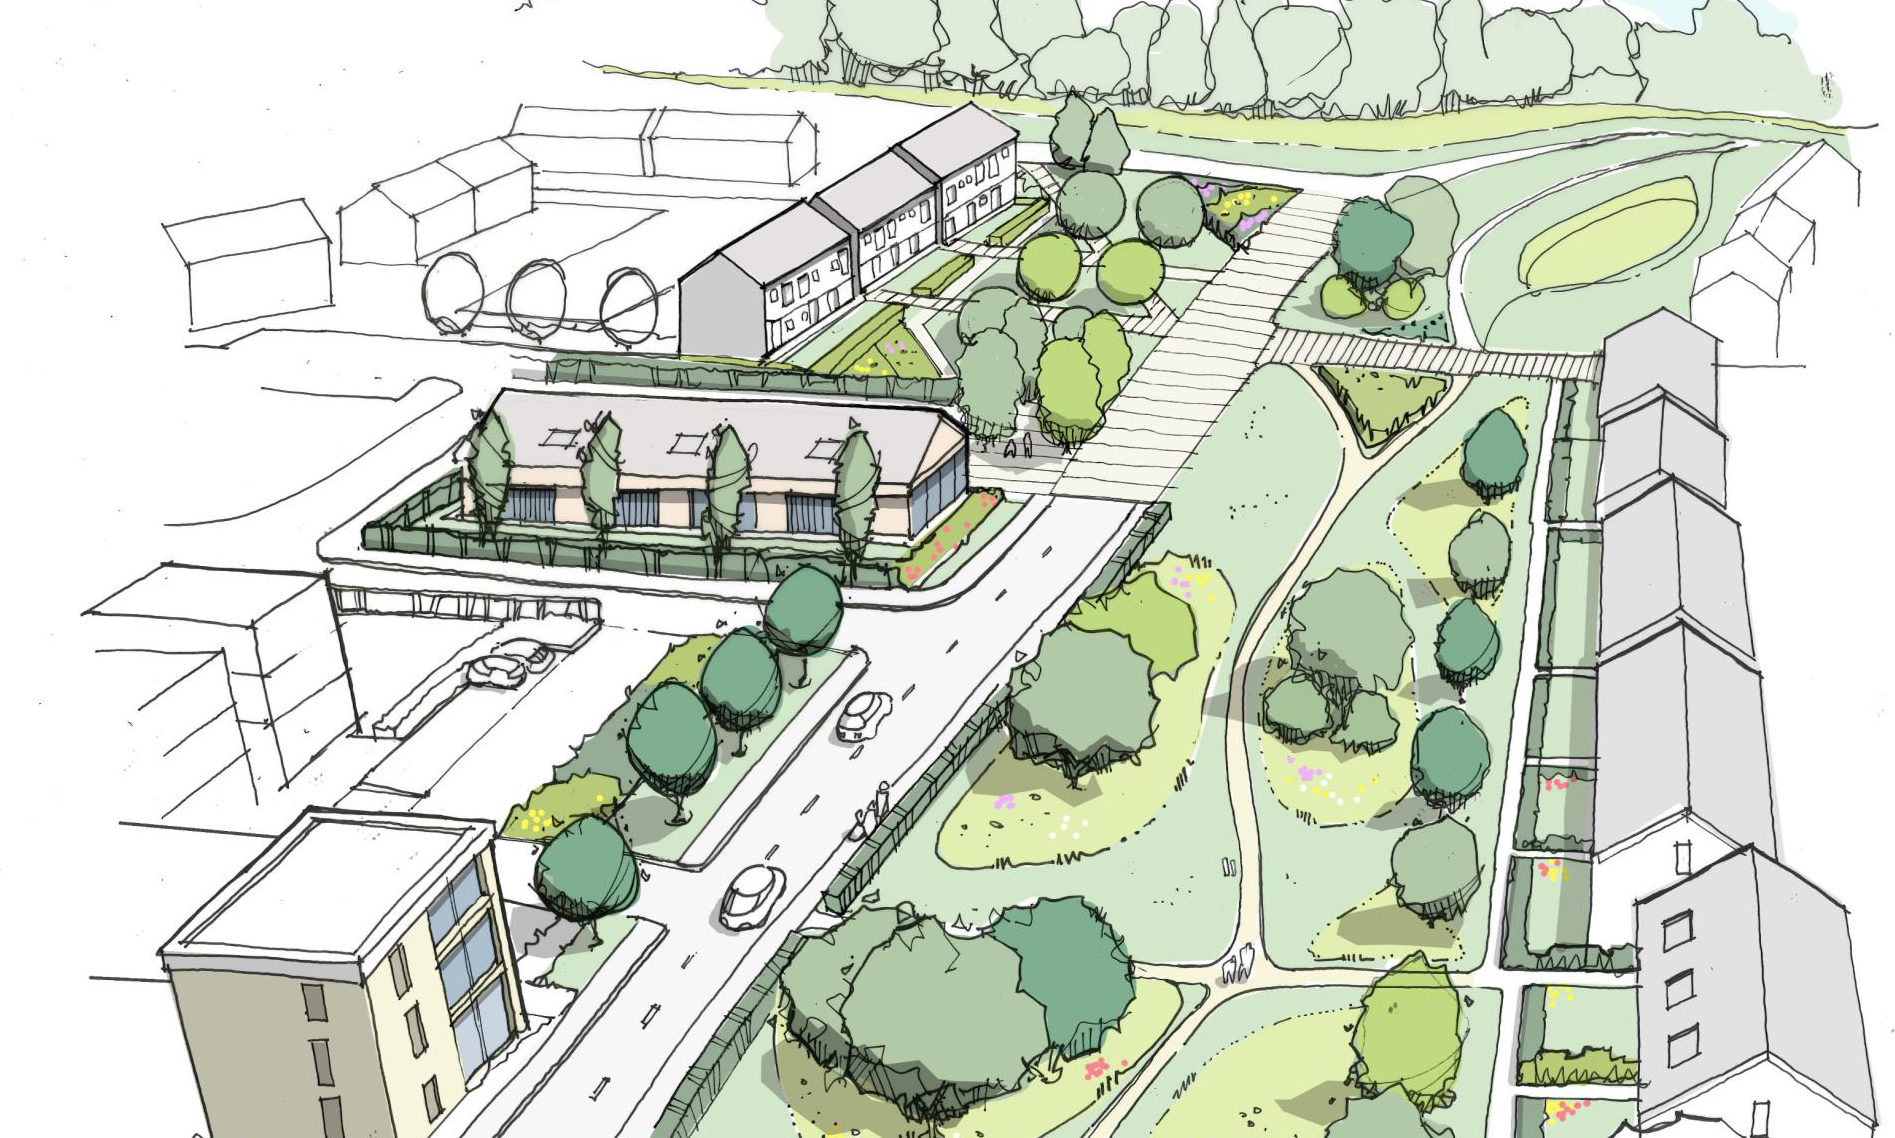 An artist's impression of the houses, planned for Cloverhill in Bridge Of Don.